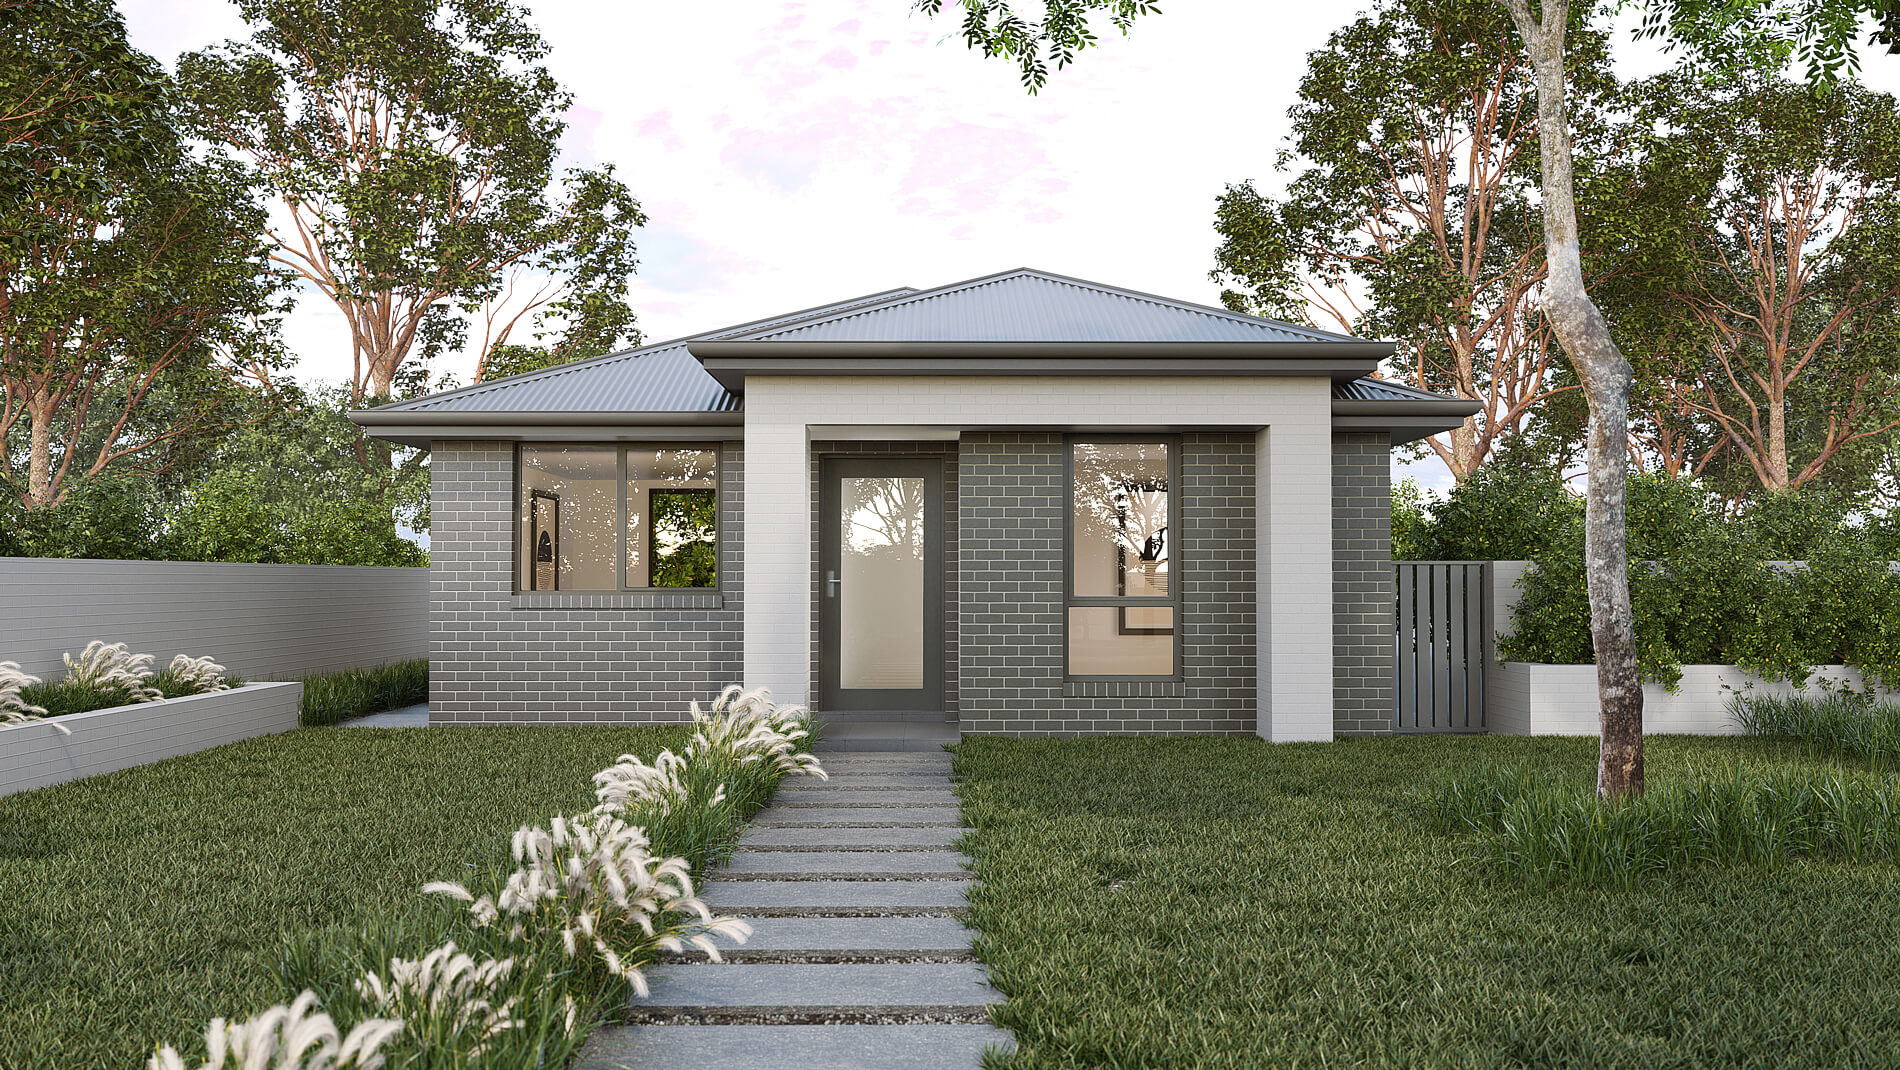 Versatile Homes Woodland Style Façade from our Studio Collection. An ideal styling where to be located within a new or established leafy neighbourhood.